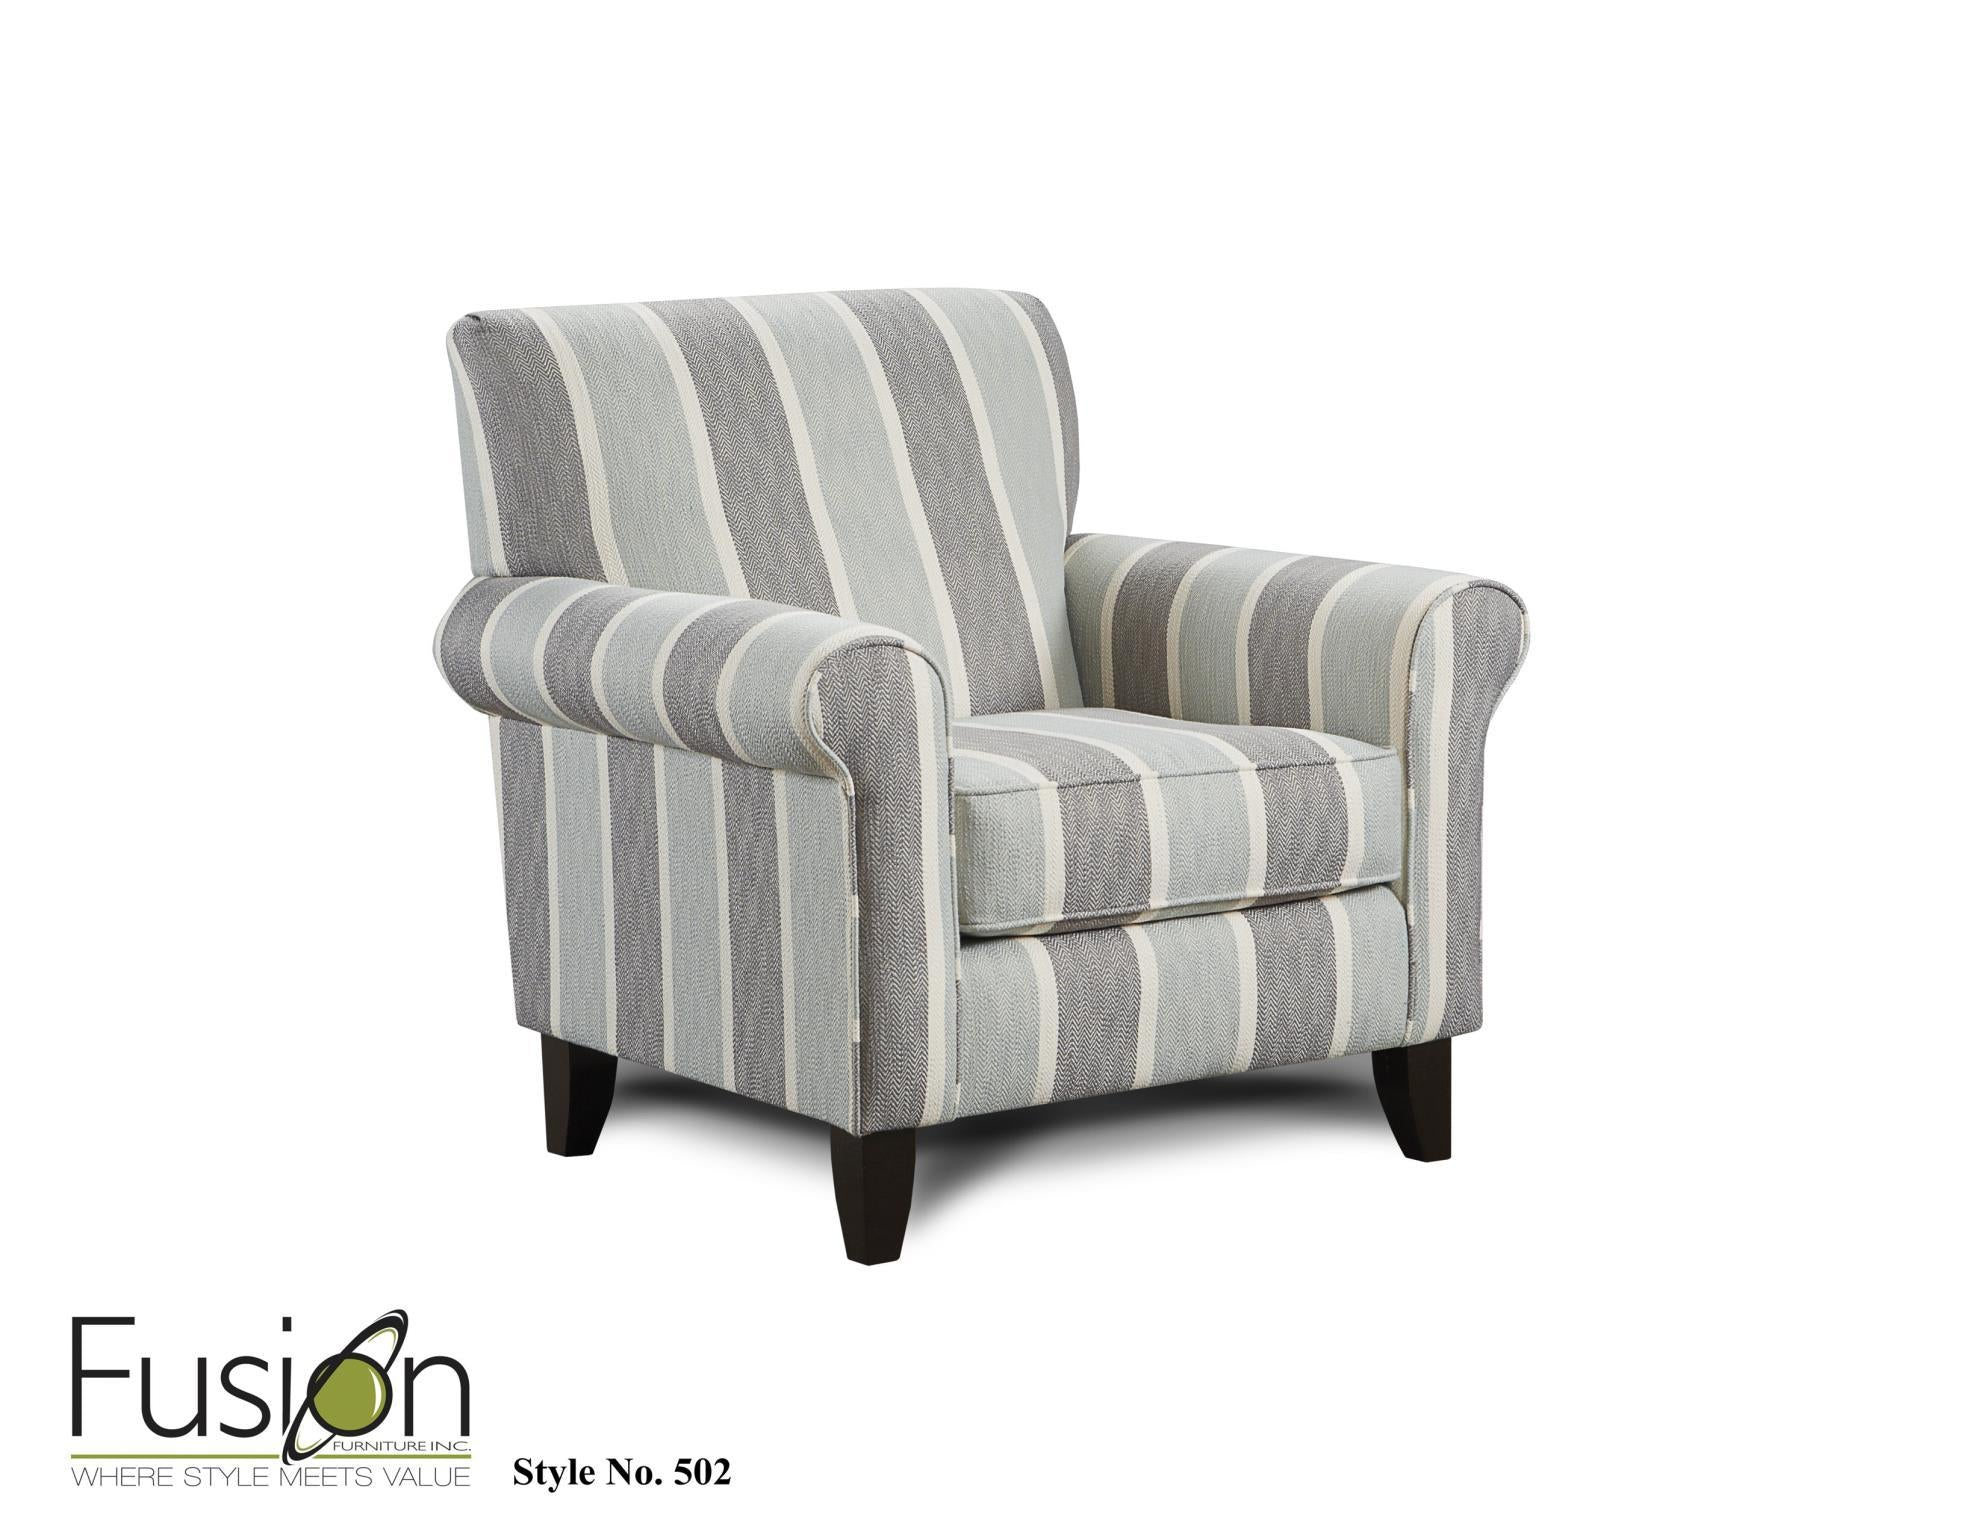 Fusion Grande Mist Accent Chair